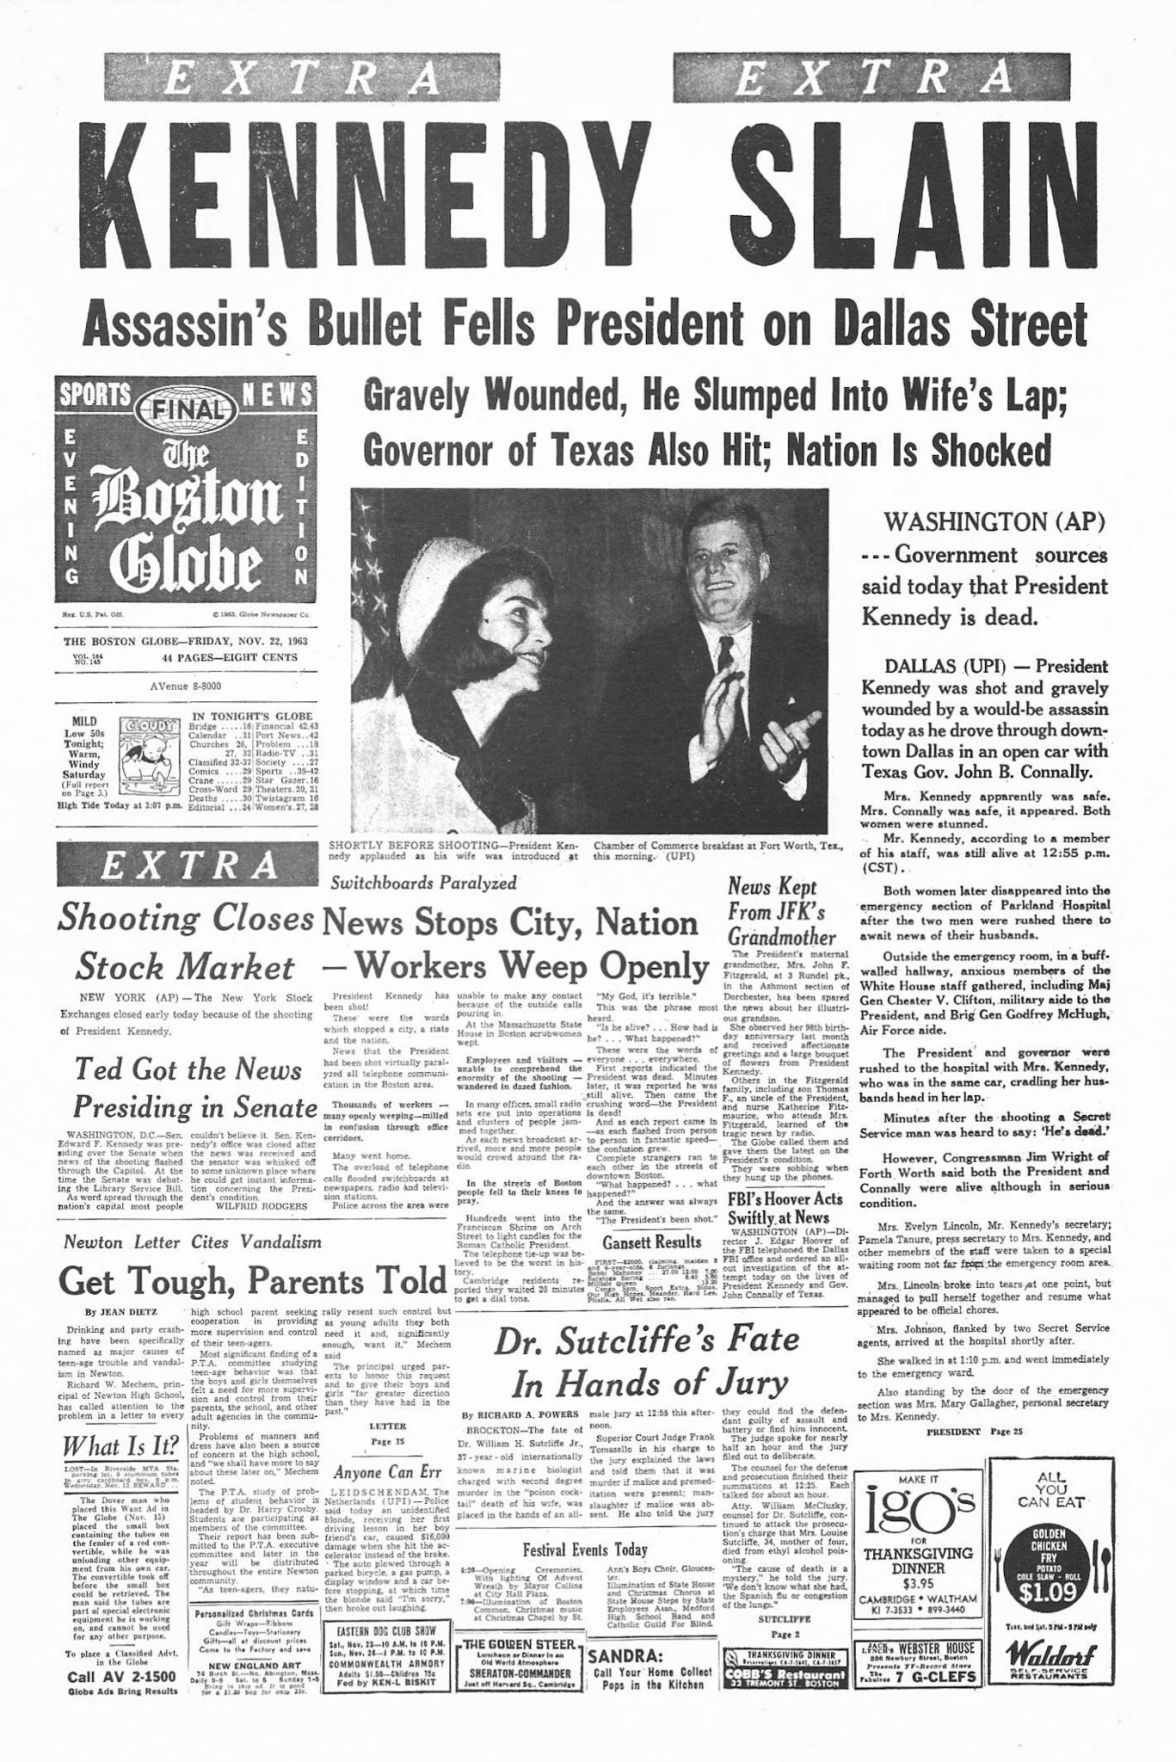 JFK assassination: Famous front pages, 50 years later | Local